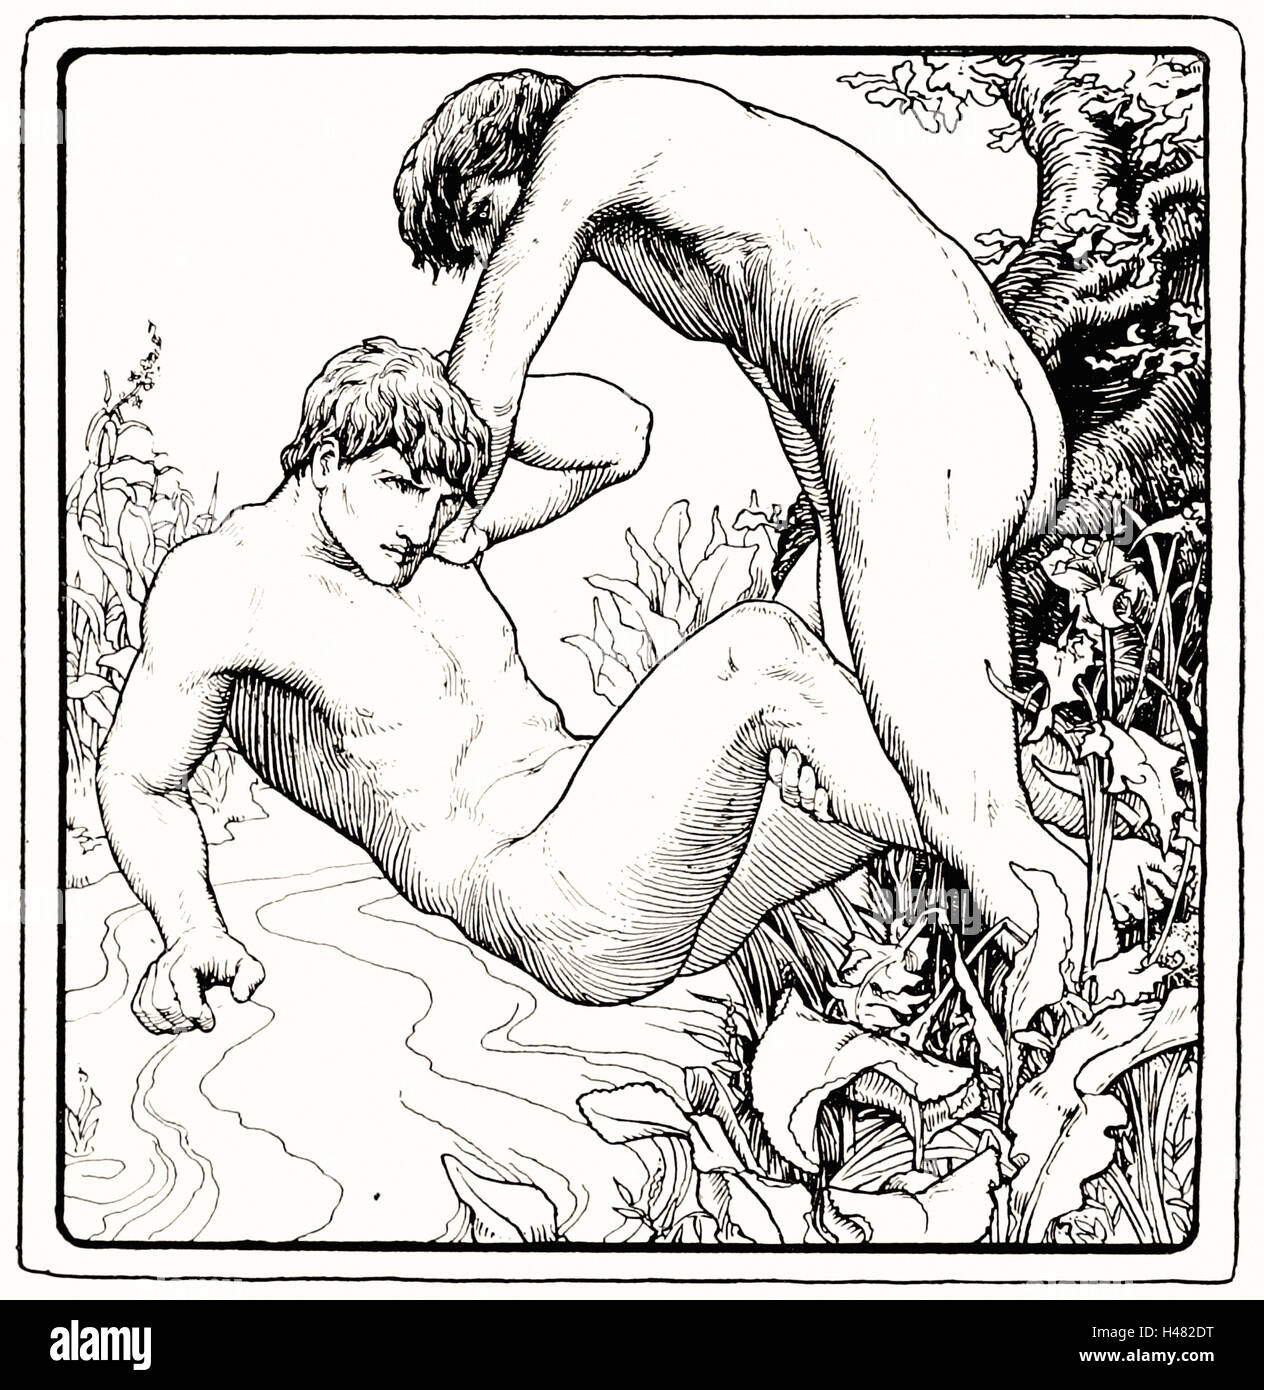 Page 215 illustration in More Celtic Fairy Tales - Stock Image